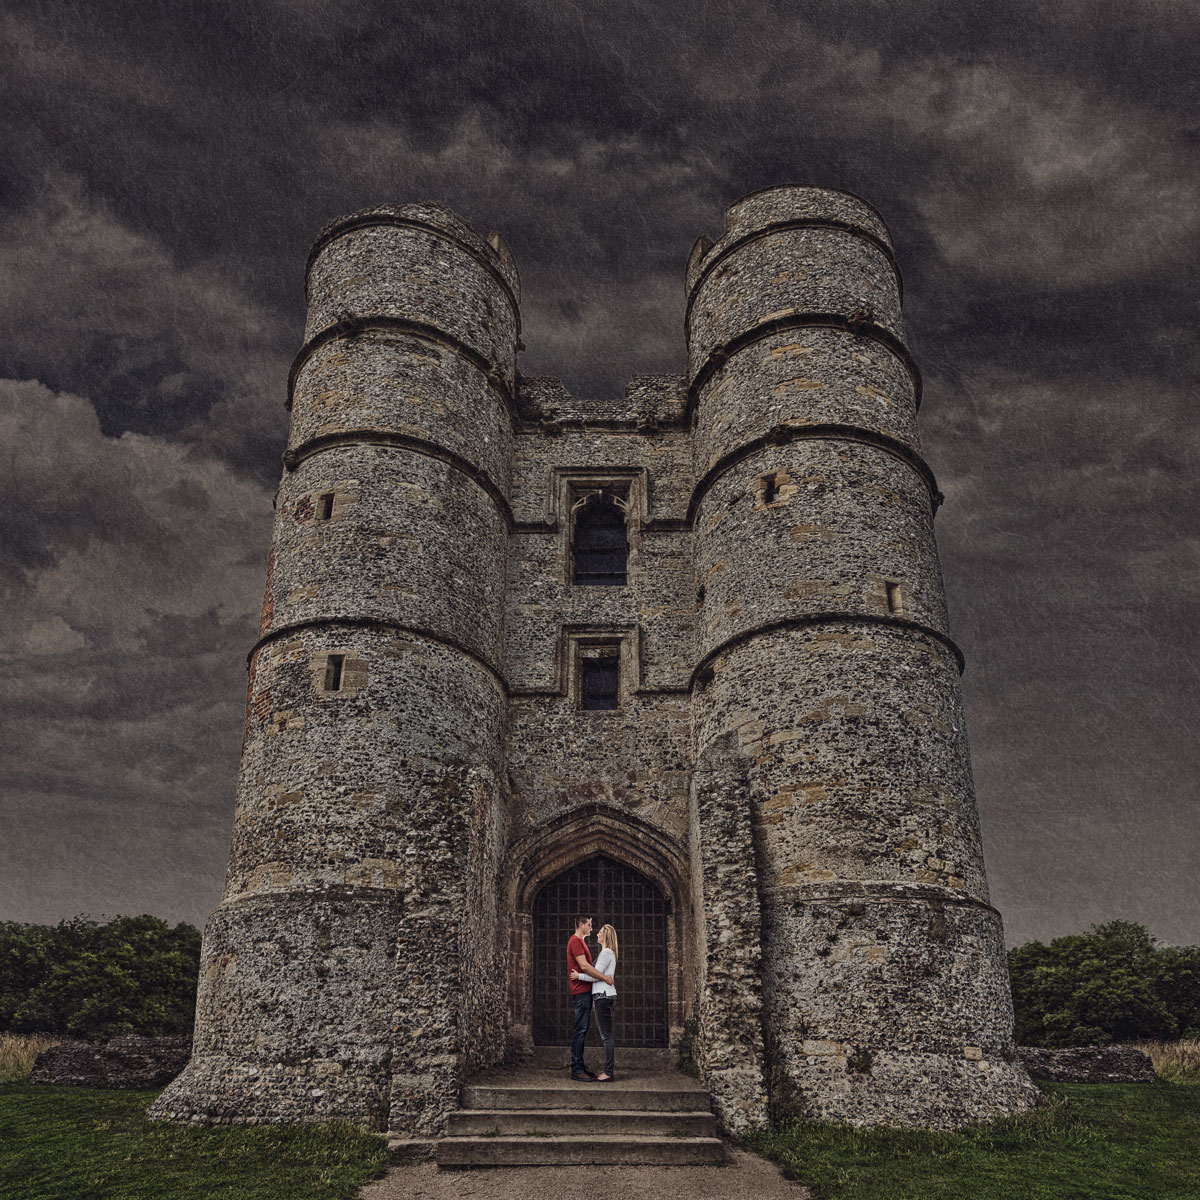 Wedding photography in a castle